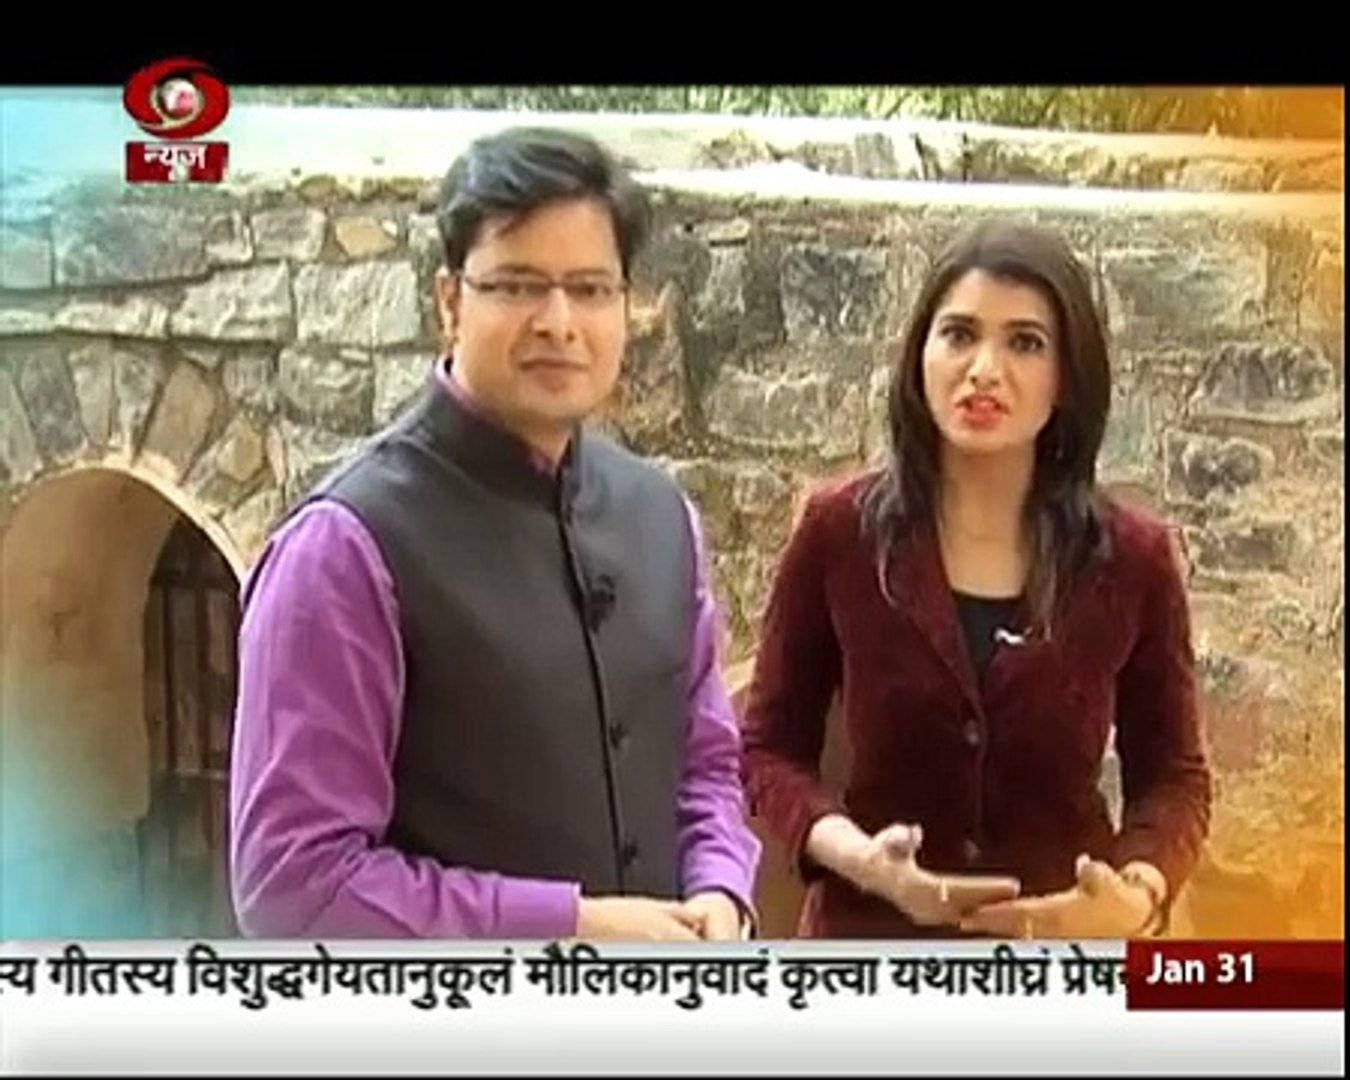 Watch Good News India only on DD News